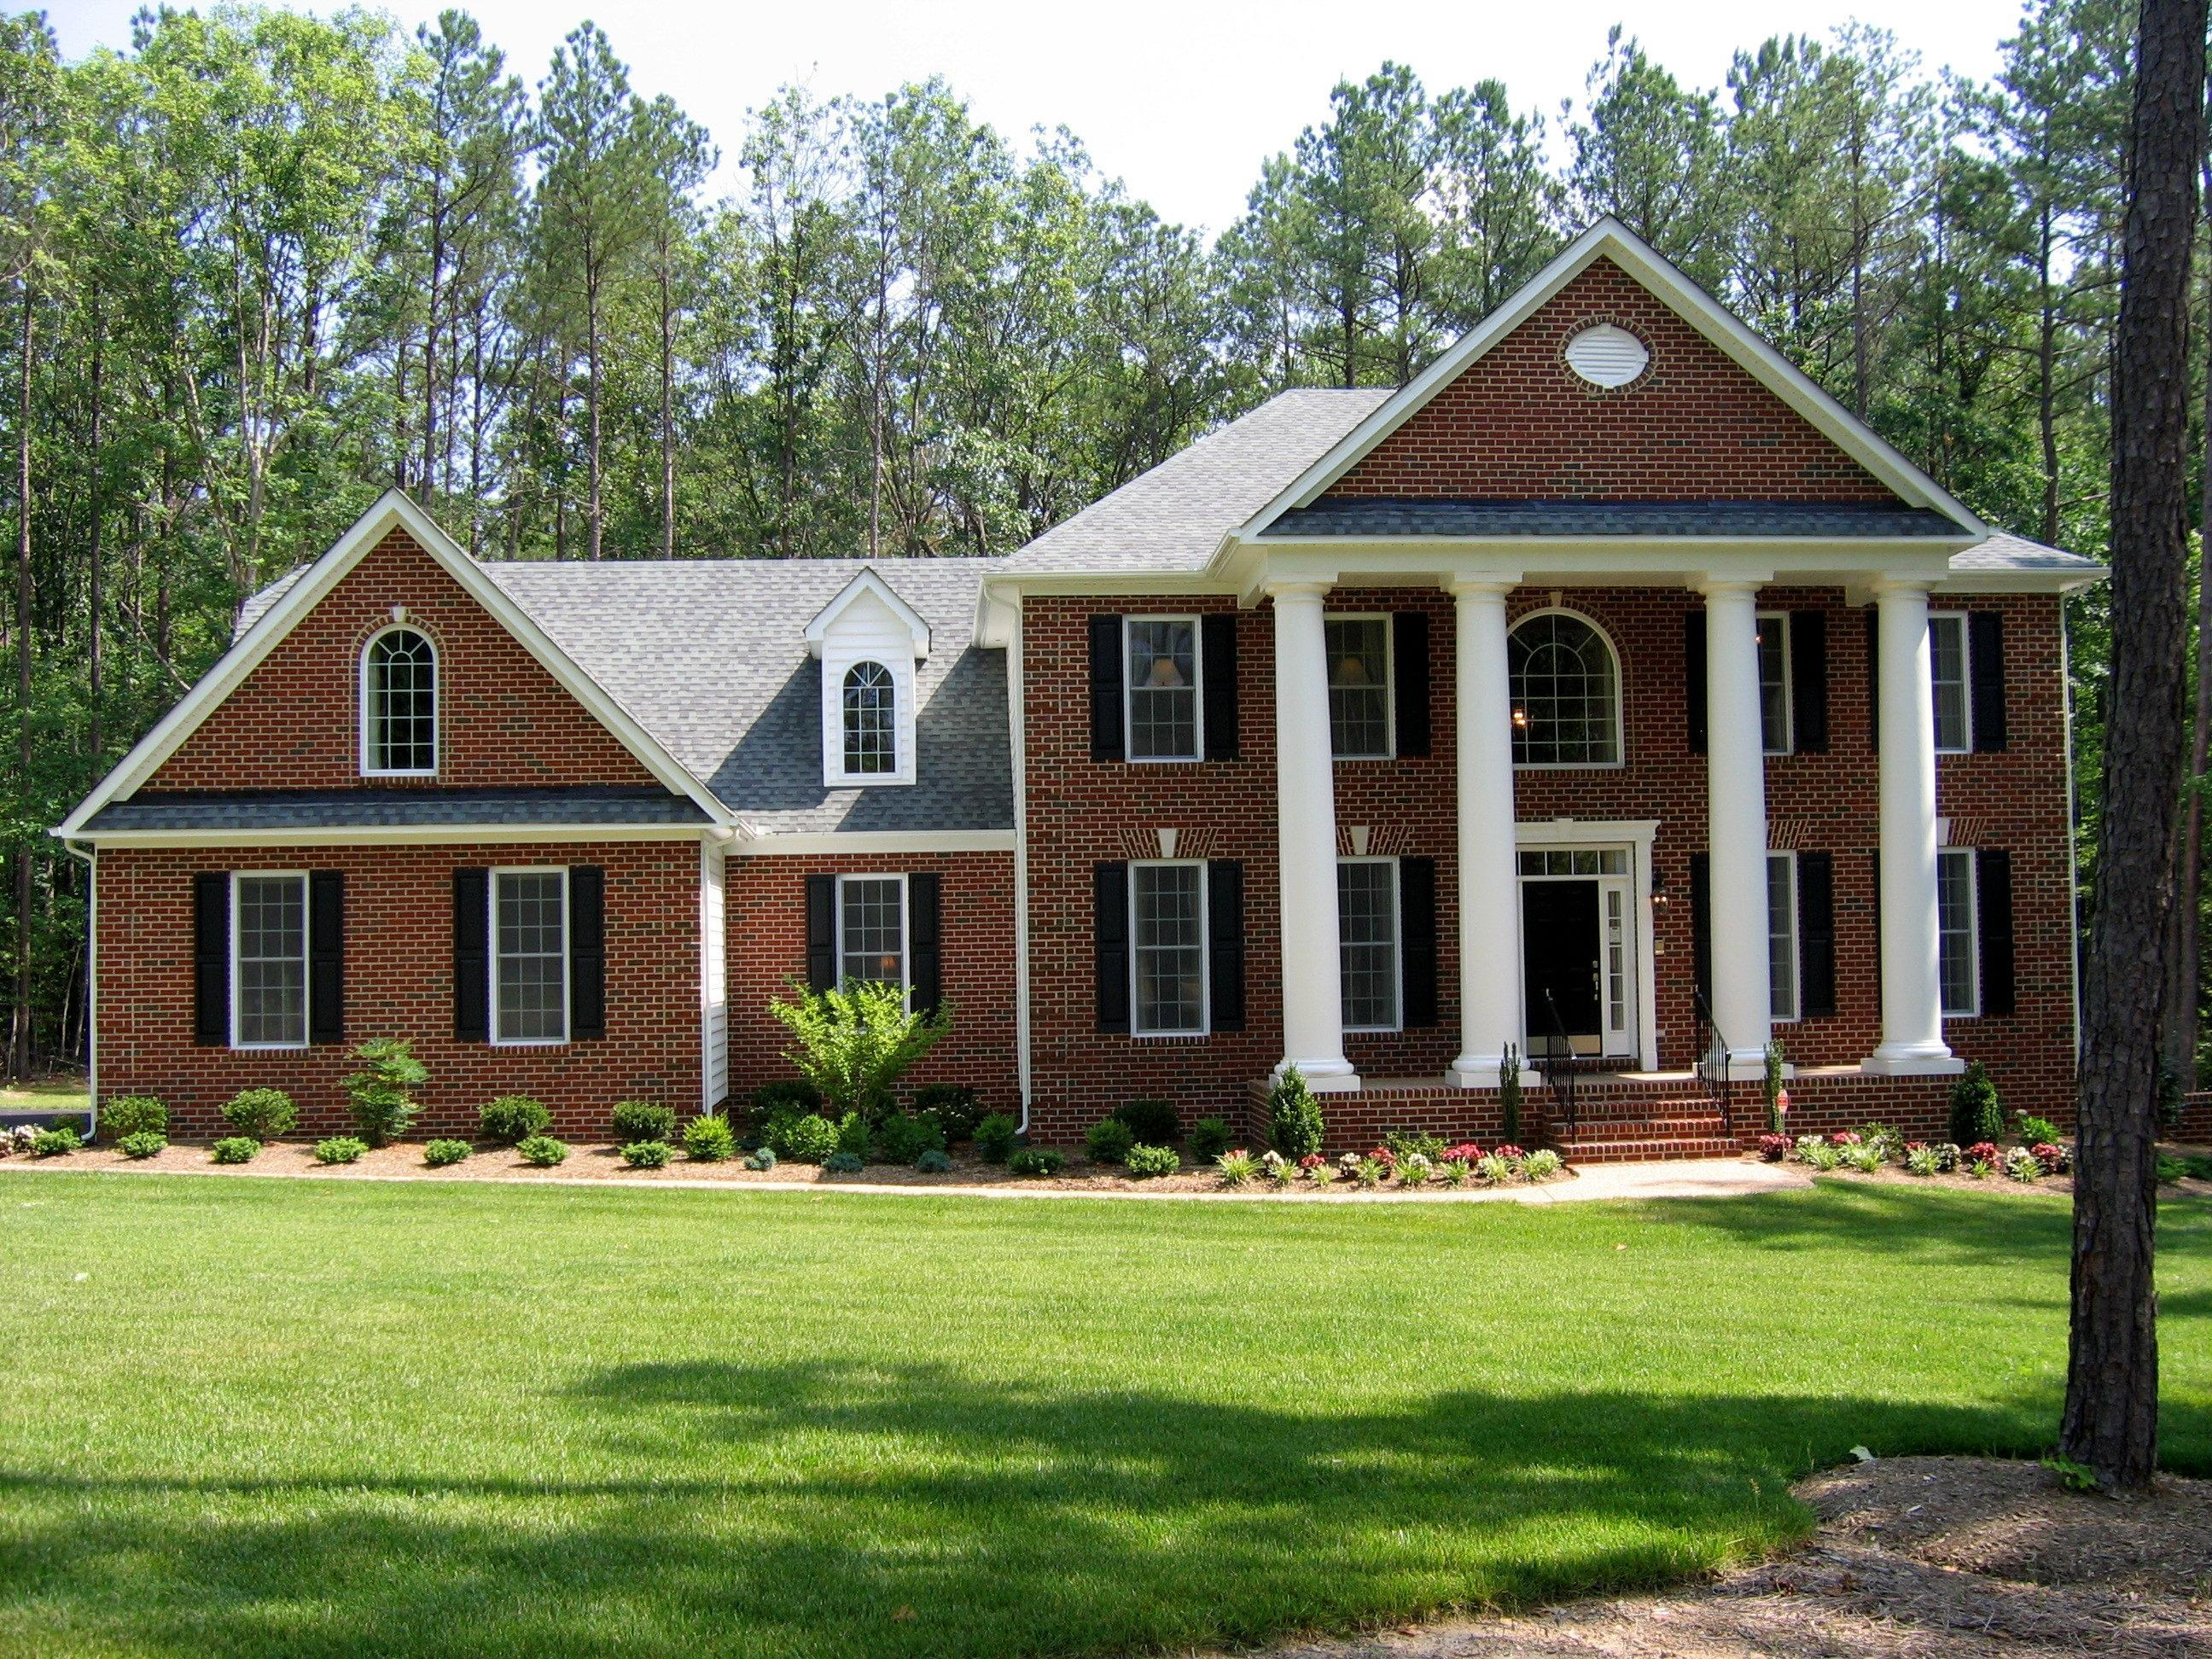 Lockridge Homes-Custom Built on Your Land